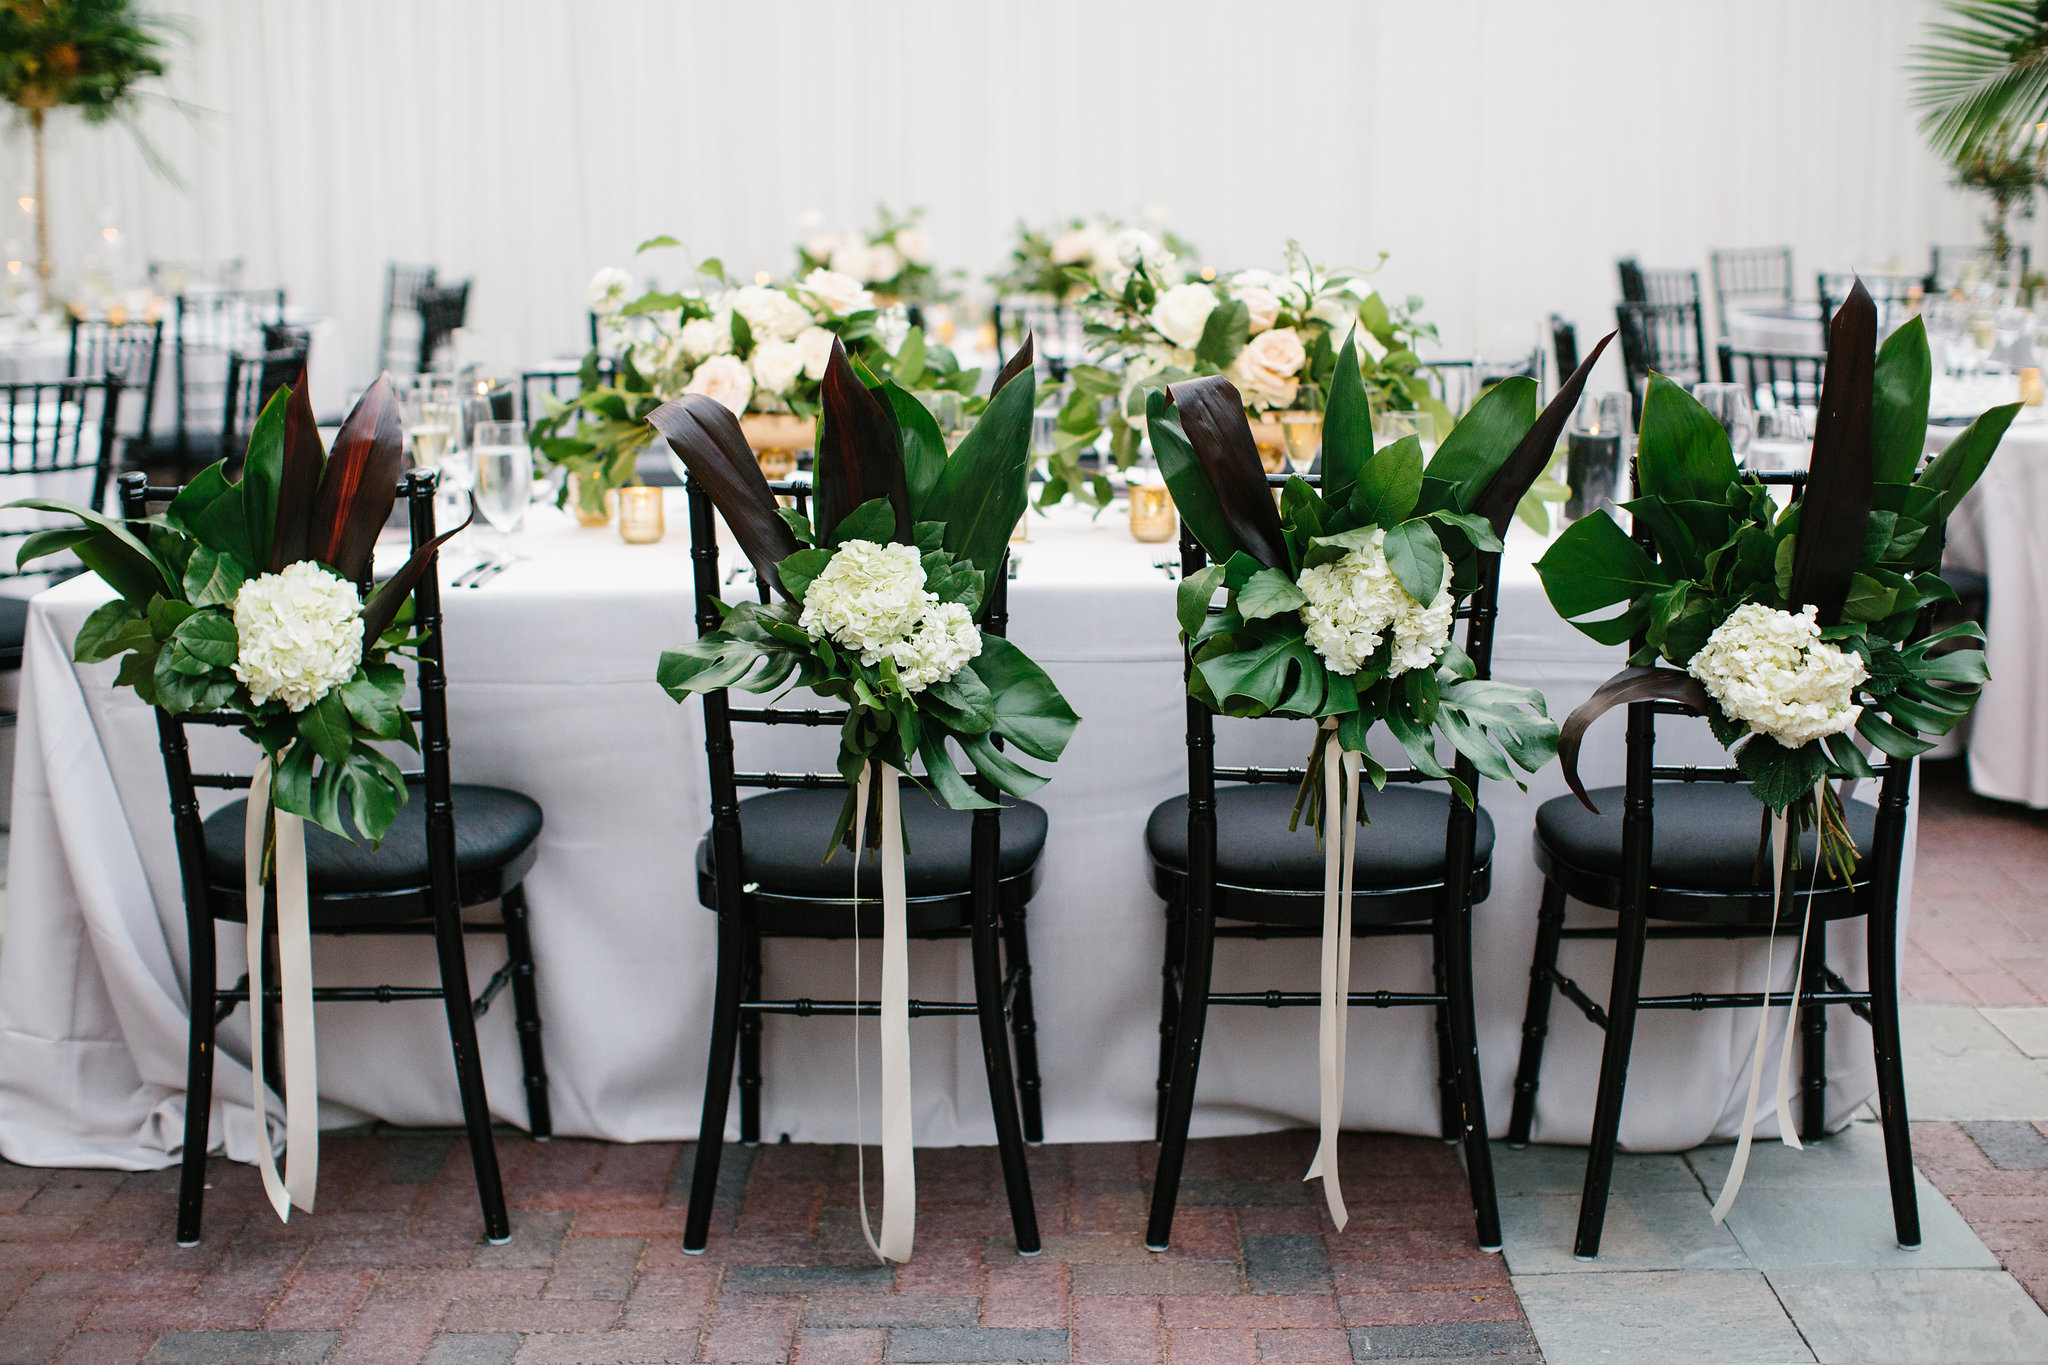 Wedding flowers by Fleur Inc at Chicago Illuminating Company.  Planning by LK Events, Images by Katie Kett Photography.